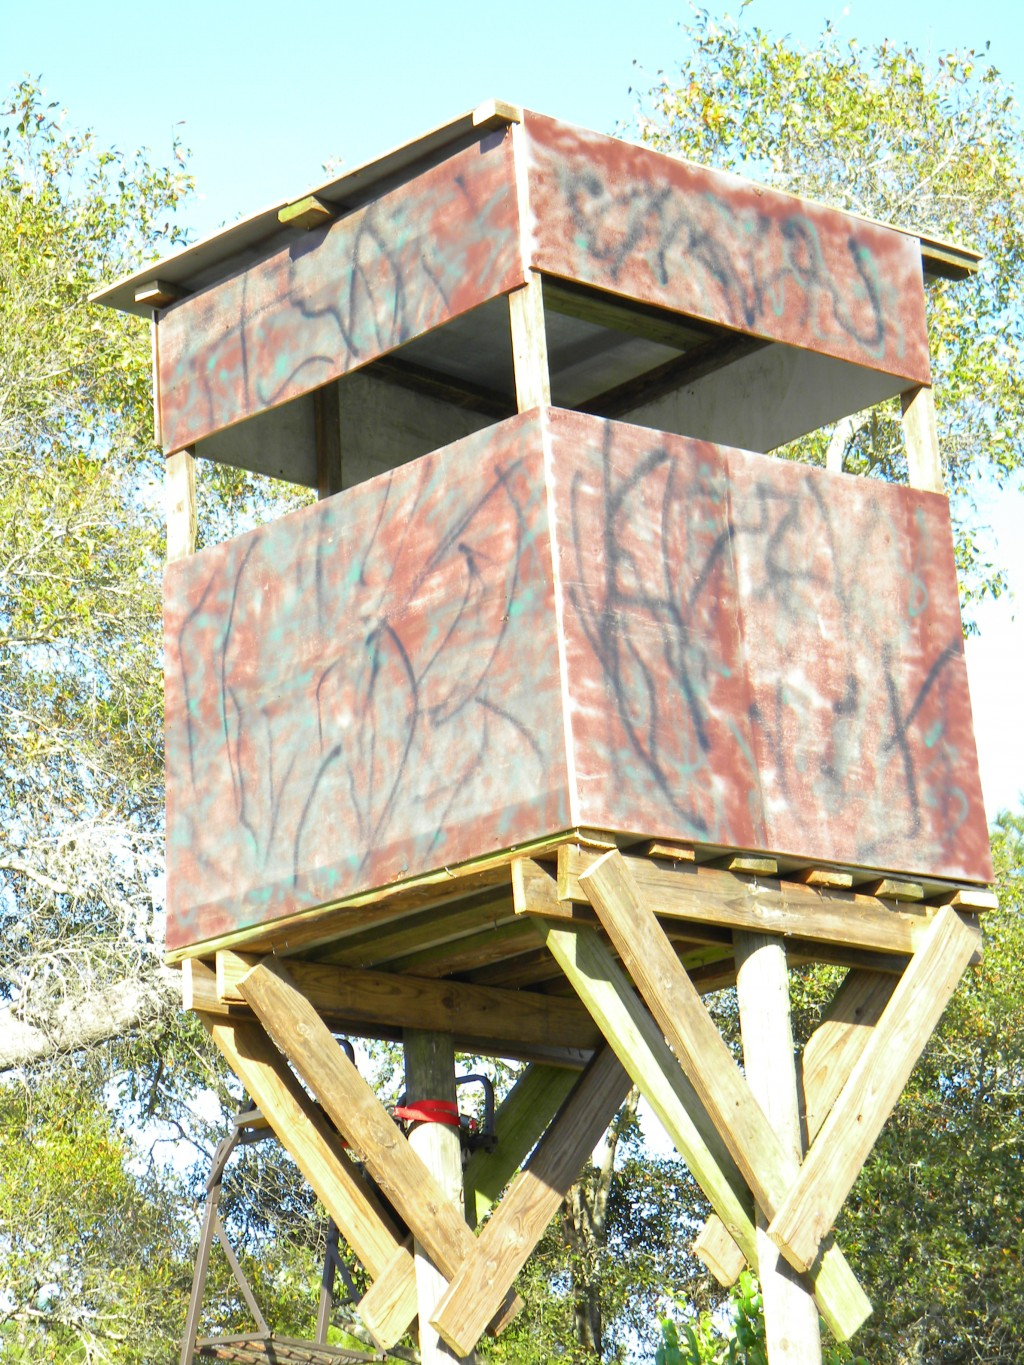 Deer Stand Placement Diagrams How To Build A Free Standing Deer Hunting Blind In The Best Location